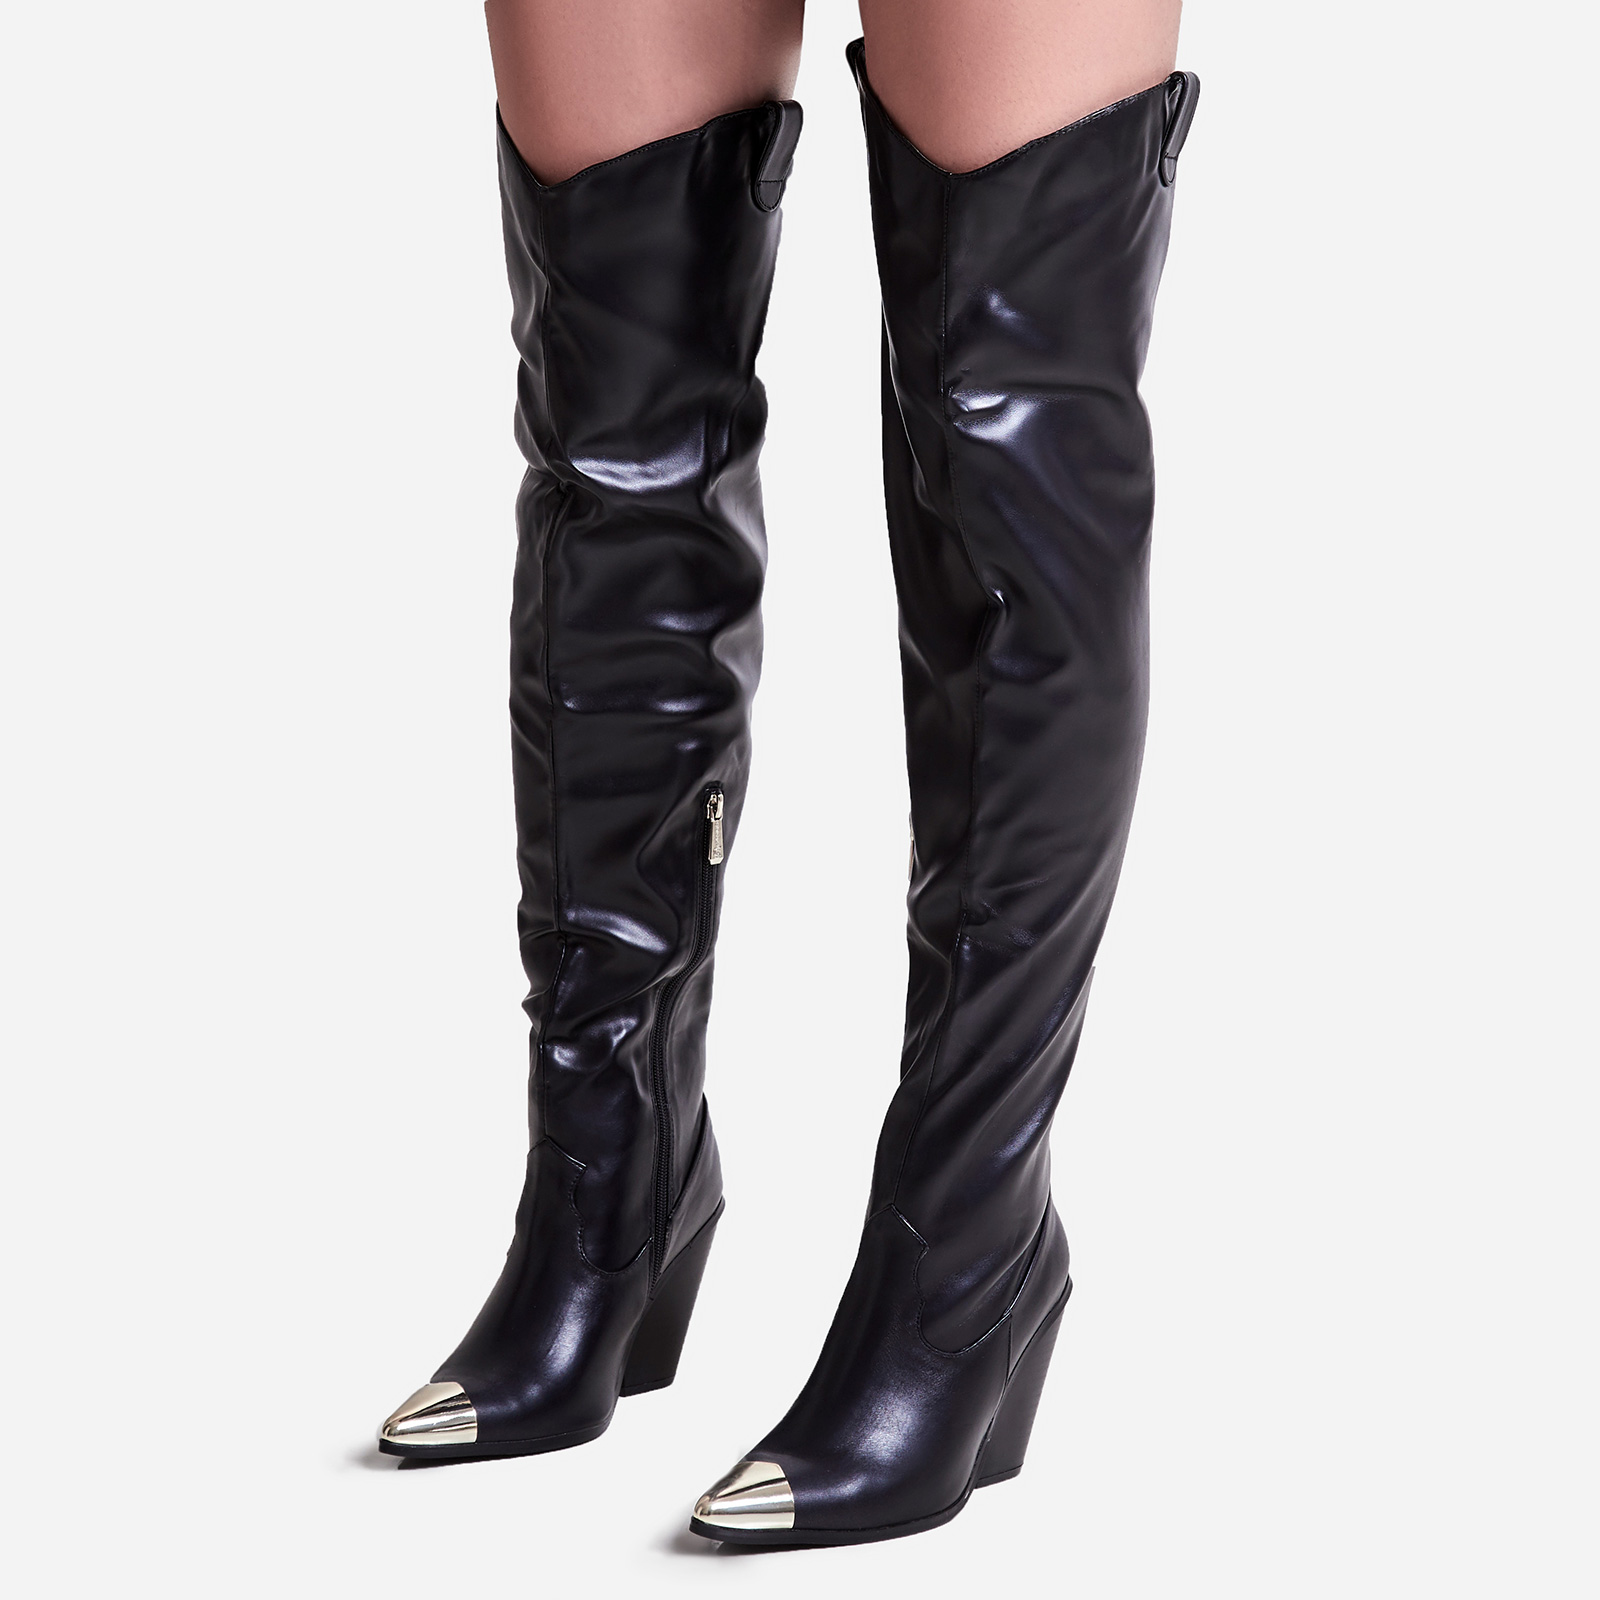 Gonna Toe Cap Detail Thigh High Western Long Boot In Black Faux Leather